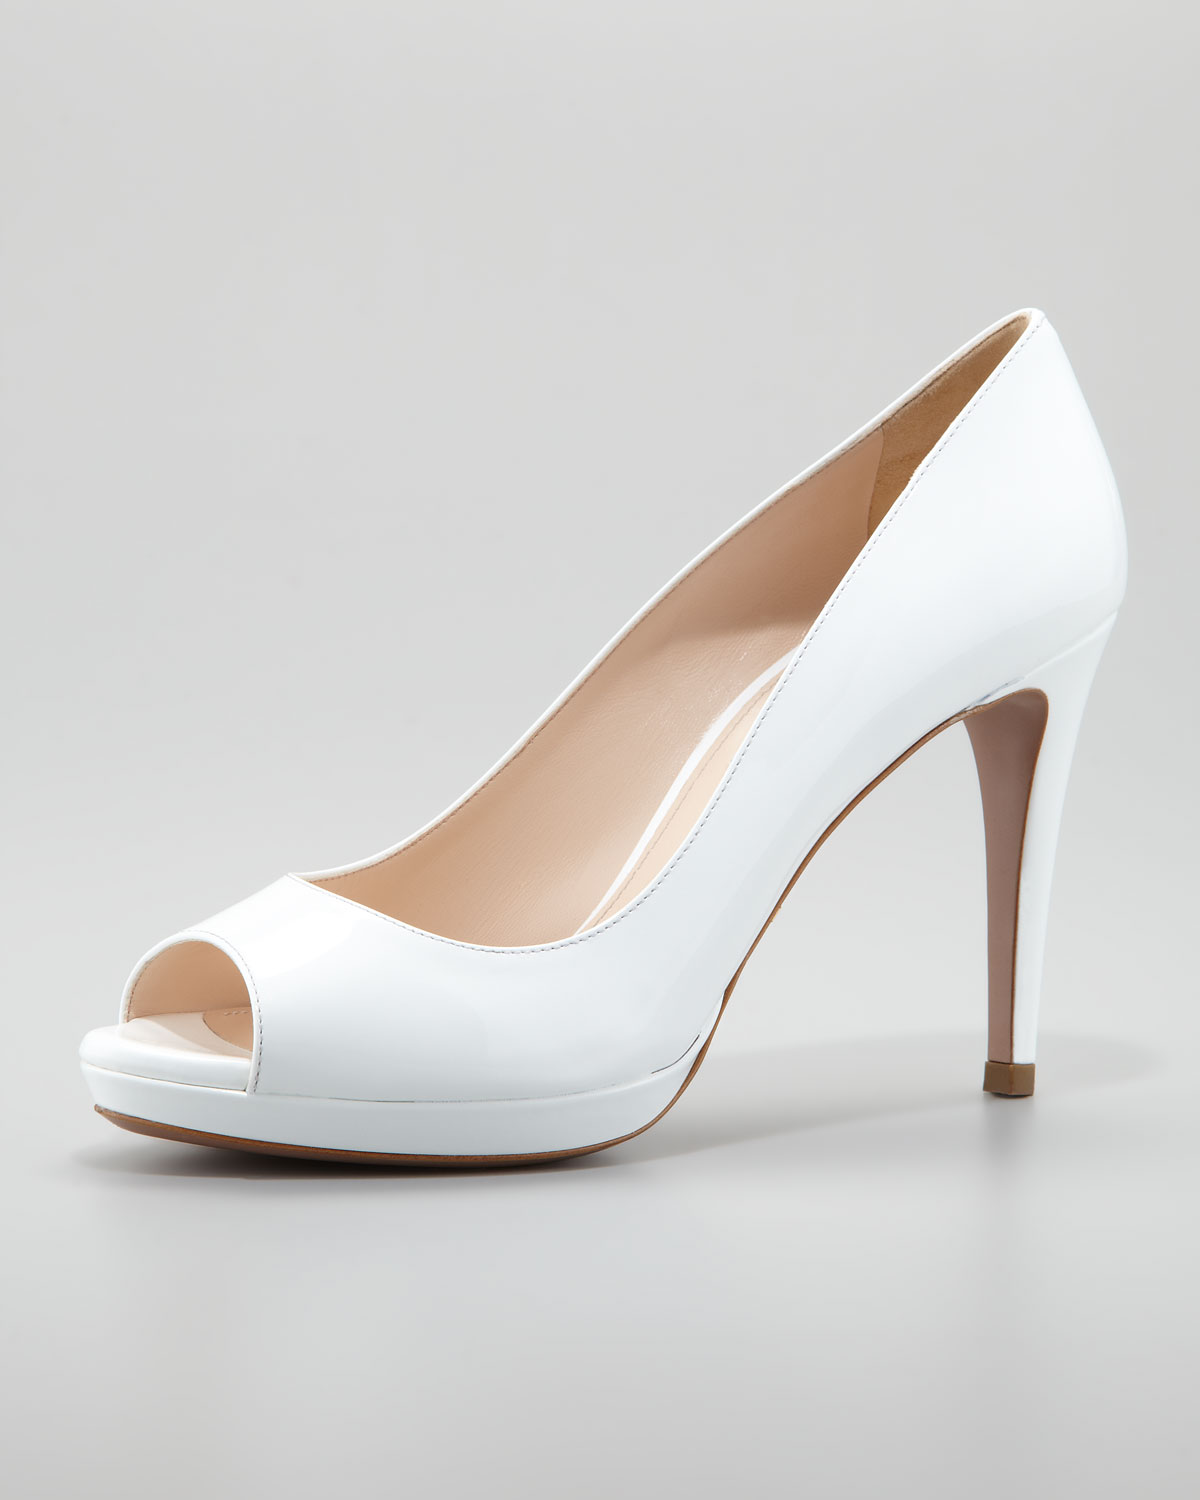 prada-white-patent-peeptoe-pump-white-product-1-5407483-470669838.jpeg